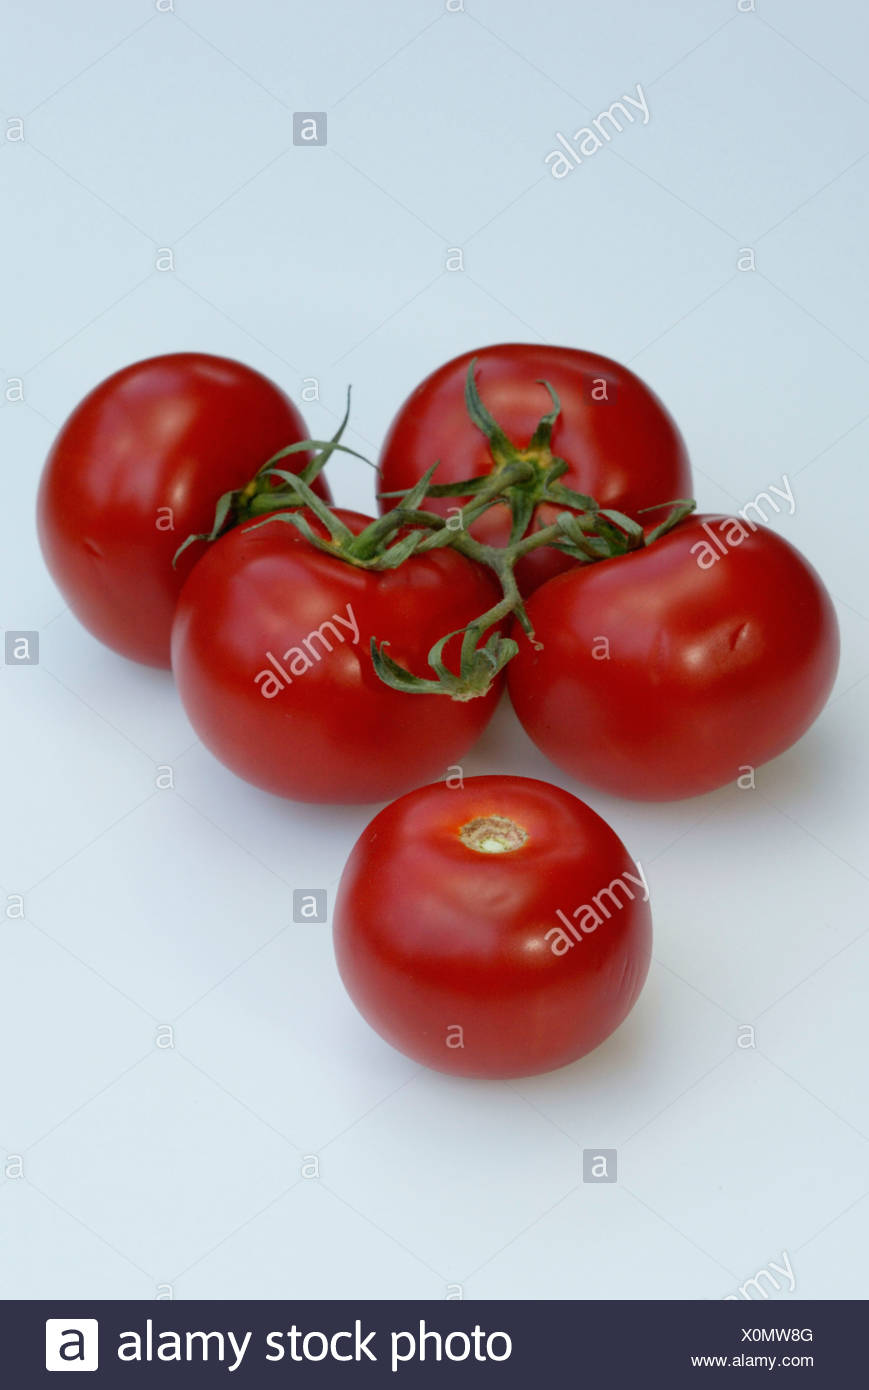 Tomate / Tomate Photo Stock